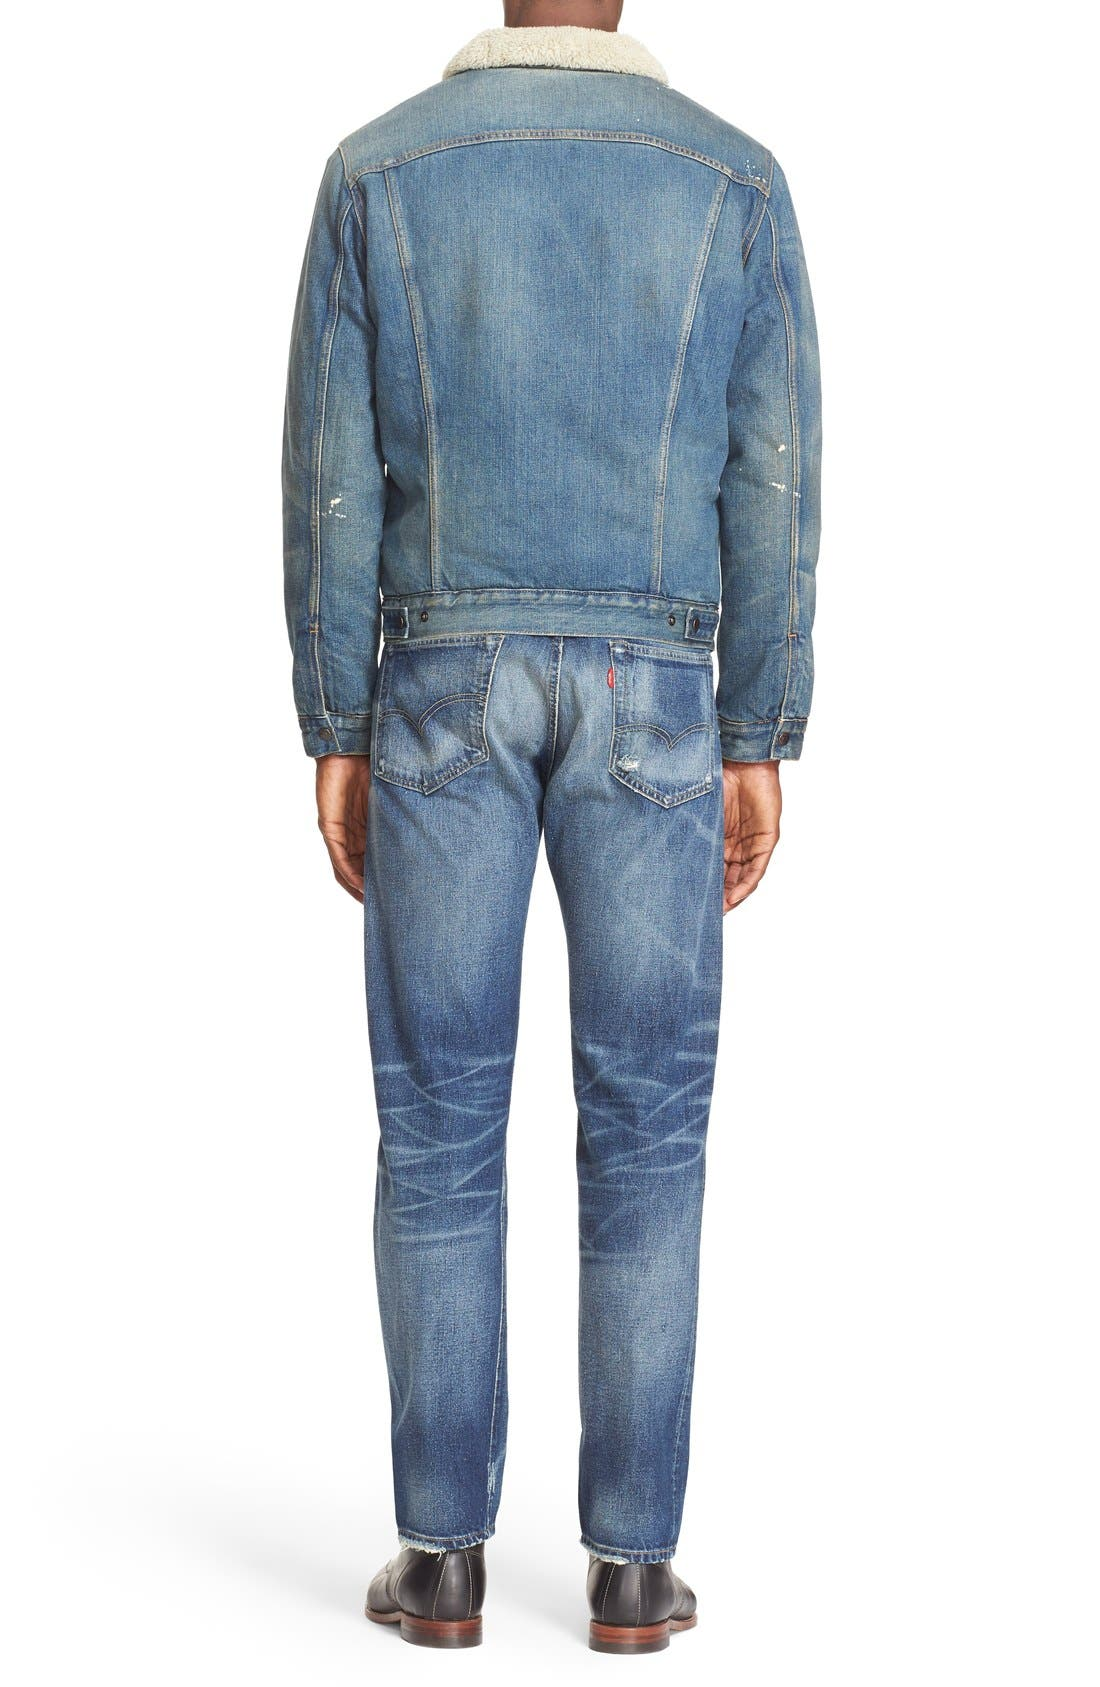 '1967 Type III' Denim Jacket with Faux Fur Collar,                             Alternate thumbnail 2, color,                             400